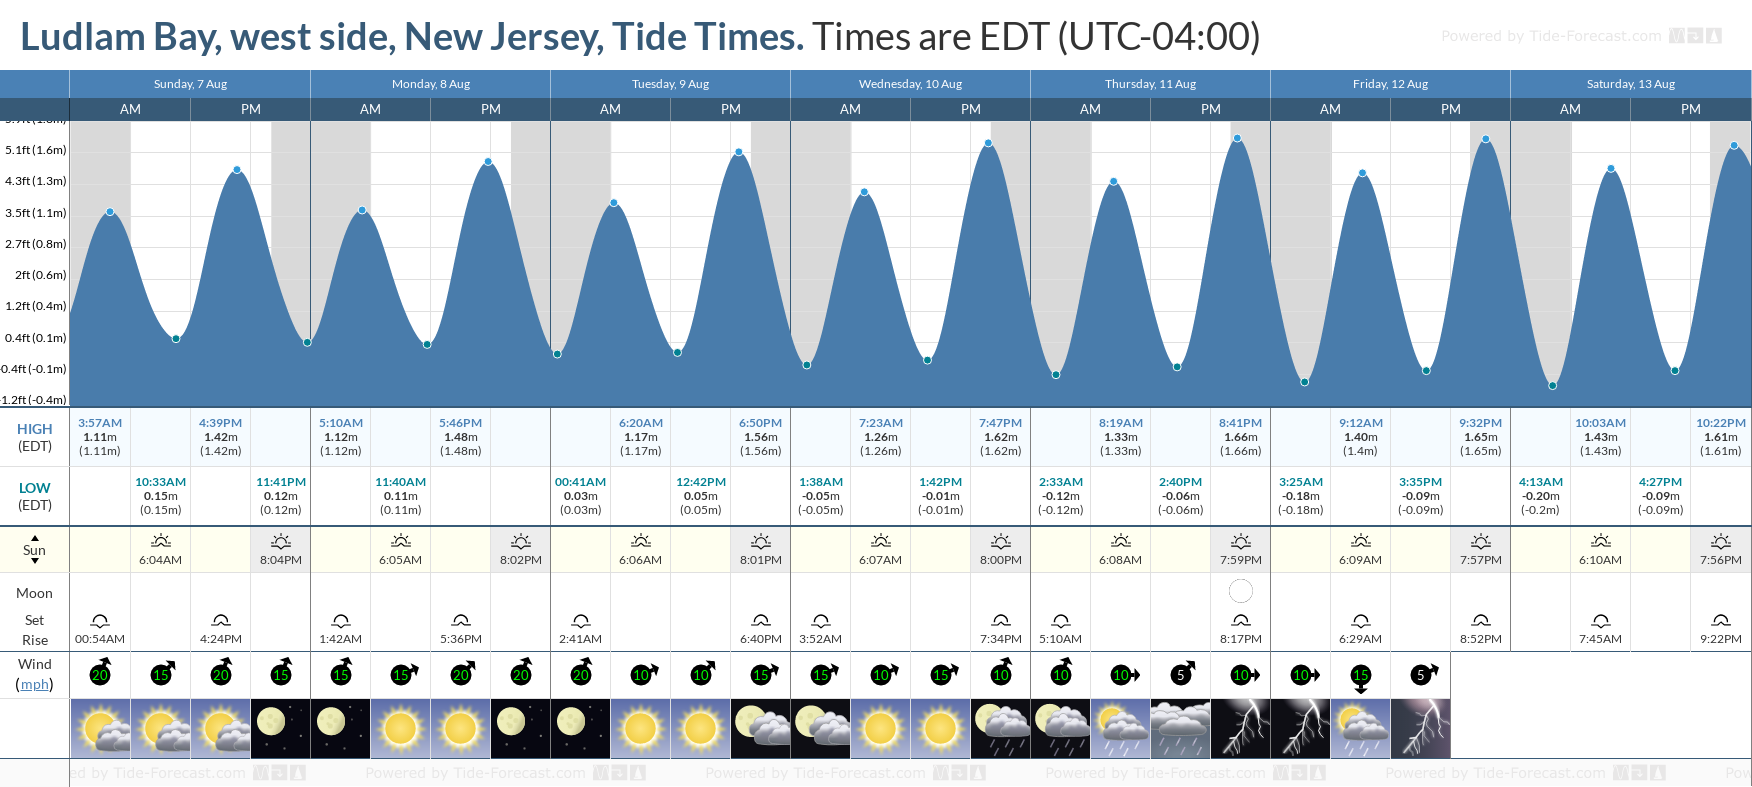 Ludlam Bay, west side, New Jersey Tide Chart including high and low tide tide times for the next 7 days